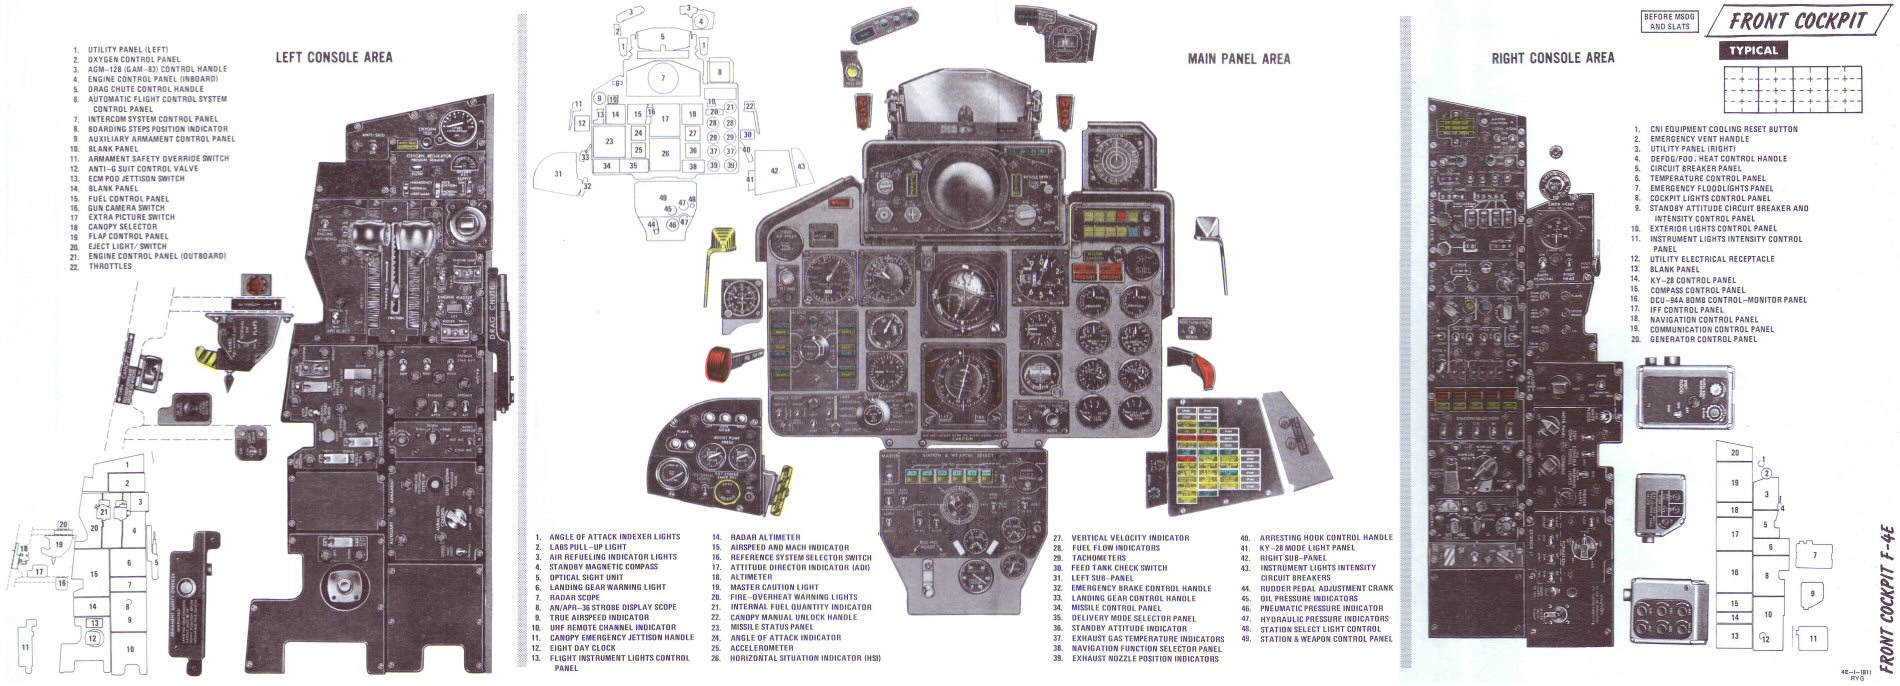 Mcdonnell F 4c Rf 4d And 4e Phantom Ii Usaf Aircraft Selector Switch Wiring Diagram Pedal Front Cockpit Instrument Panel Before Msog Slats